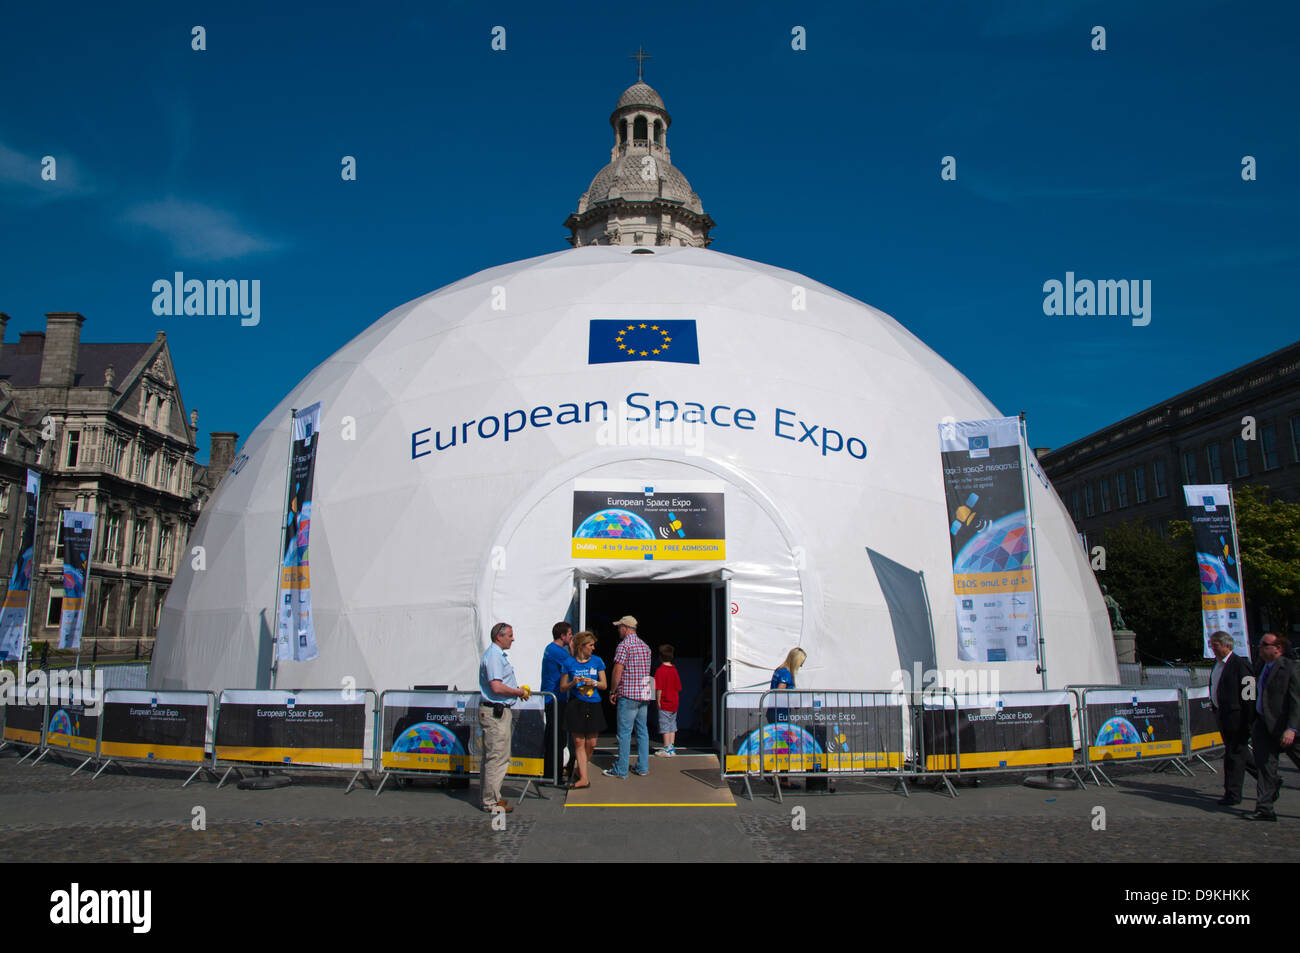 European Space Expo tent in Trinity college university area central Dublin Ireland Europe - Stock Image